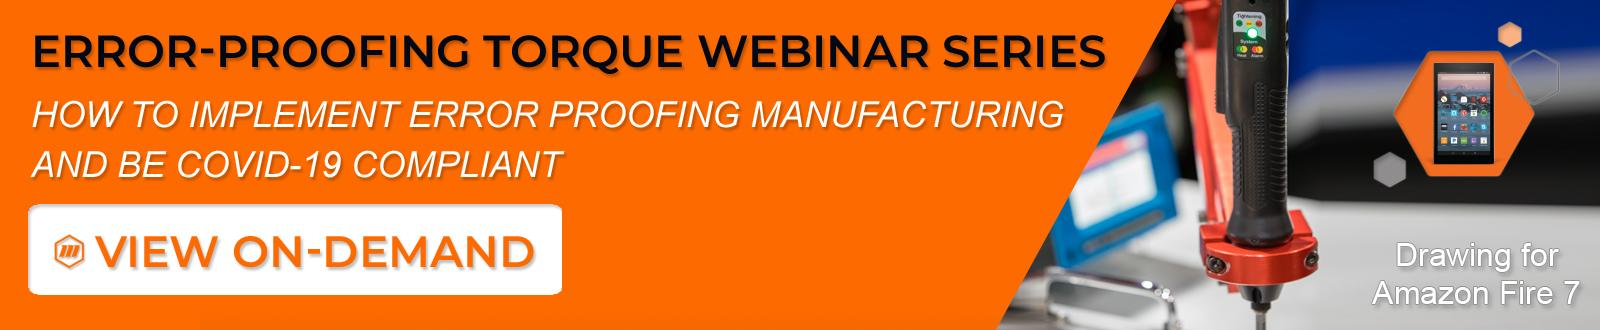 Learn How to Implement Error Proofing Manufacturing & be COVID-19 Compliant